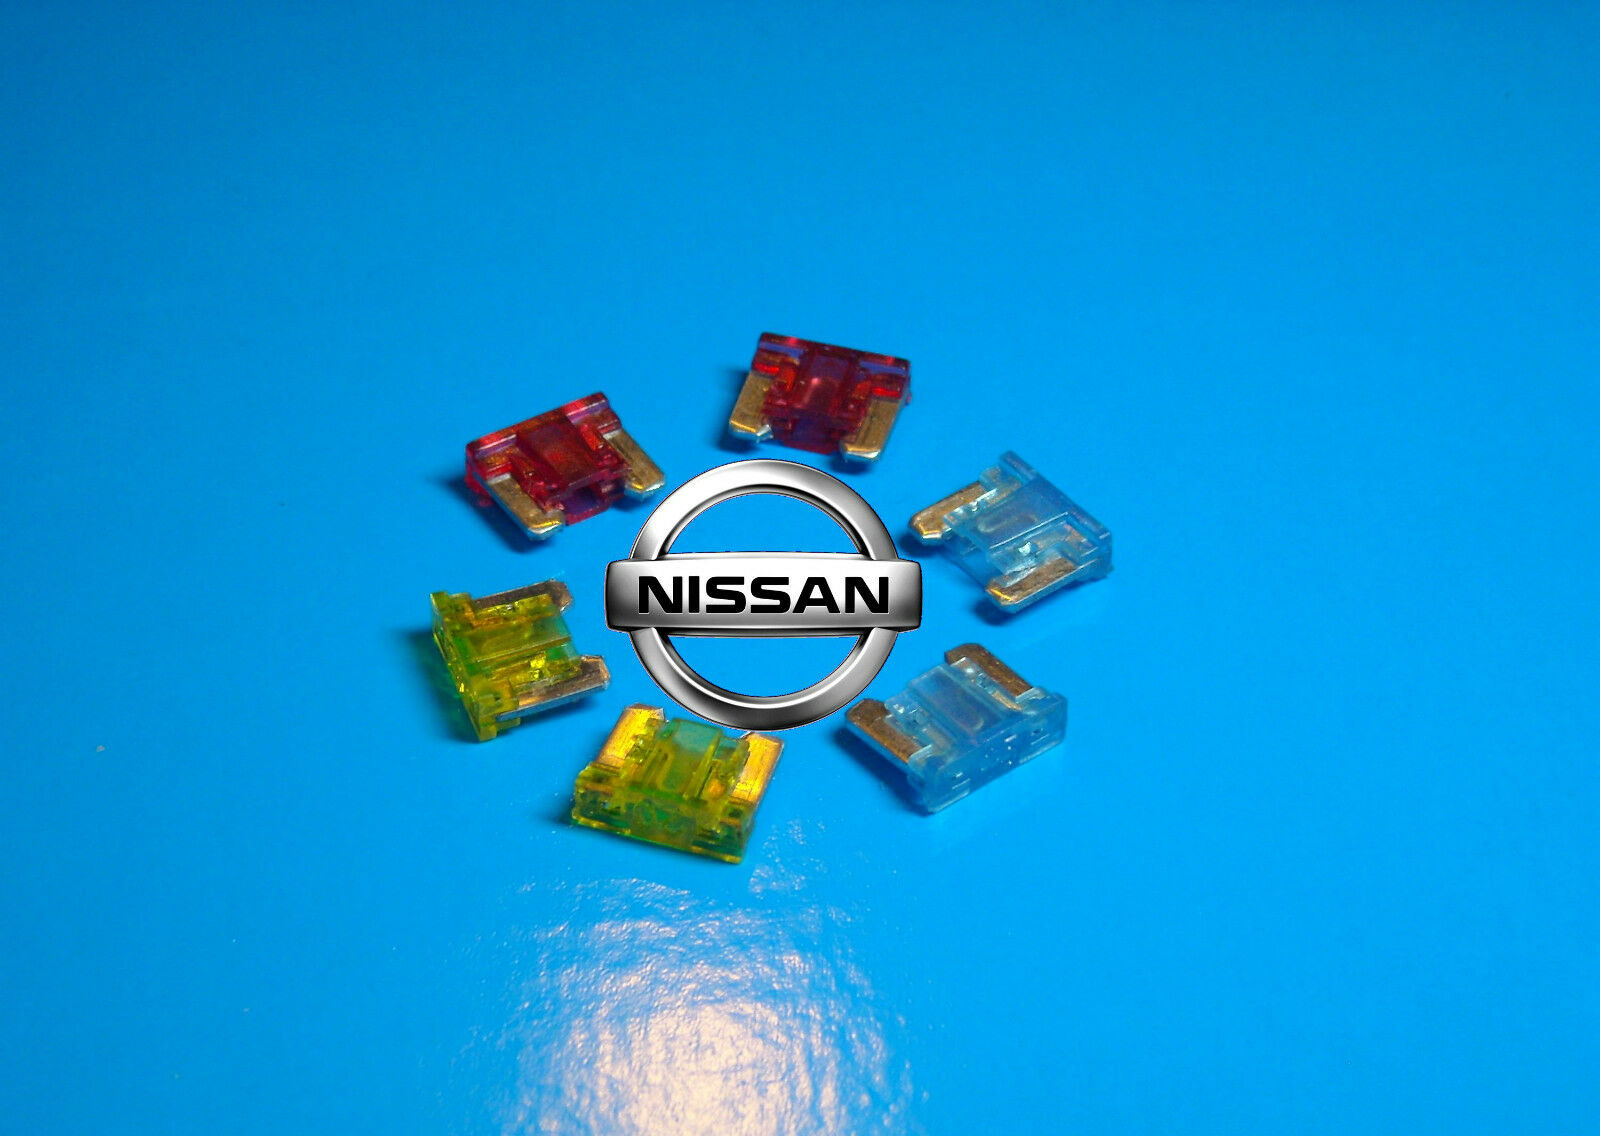 Premium Micro Mini Blade Spare Fuses Kit For N16 Nissan Pulsar 2000 Fuse Box Norton Secured Powered By Verisign